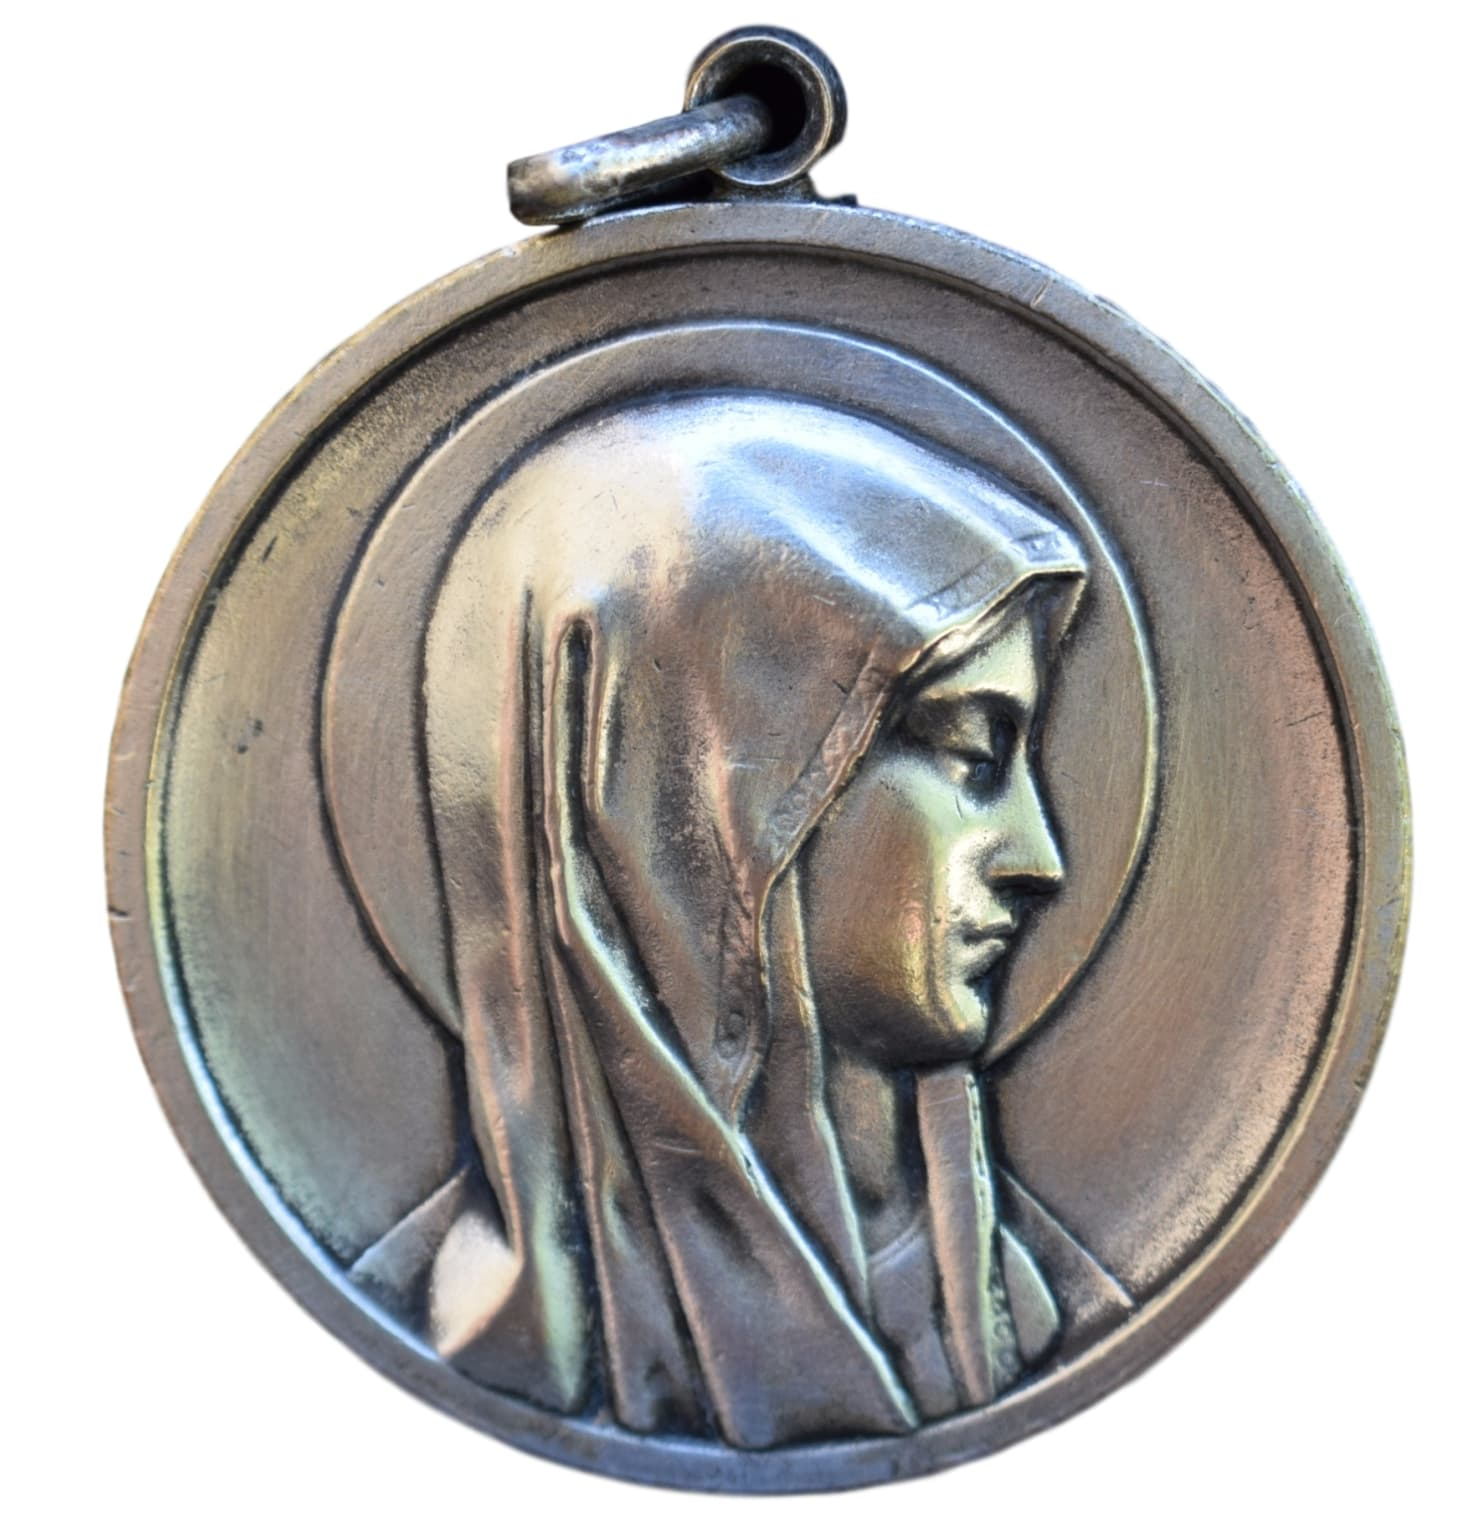 Large Lourdes Our Lady Mary Medal - French Vintage Large Religious Medal Medallion Pendant - Christian Medal - Communion Gift